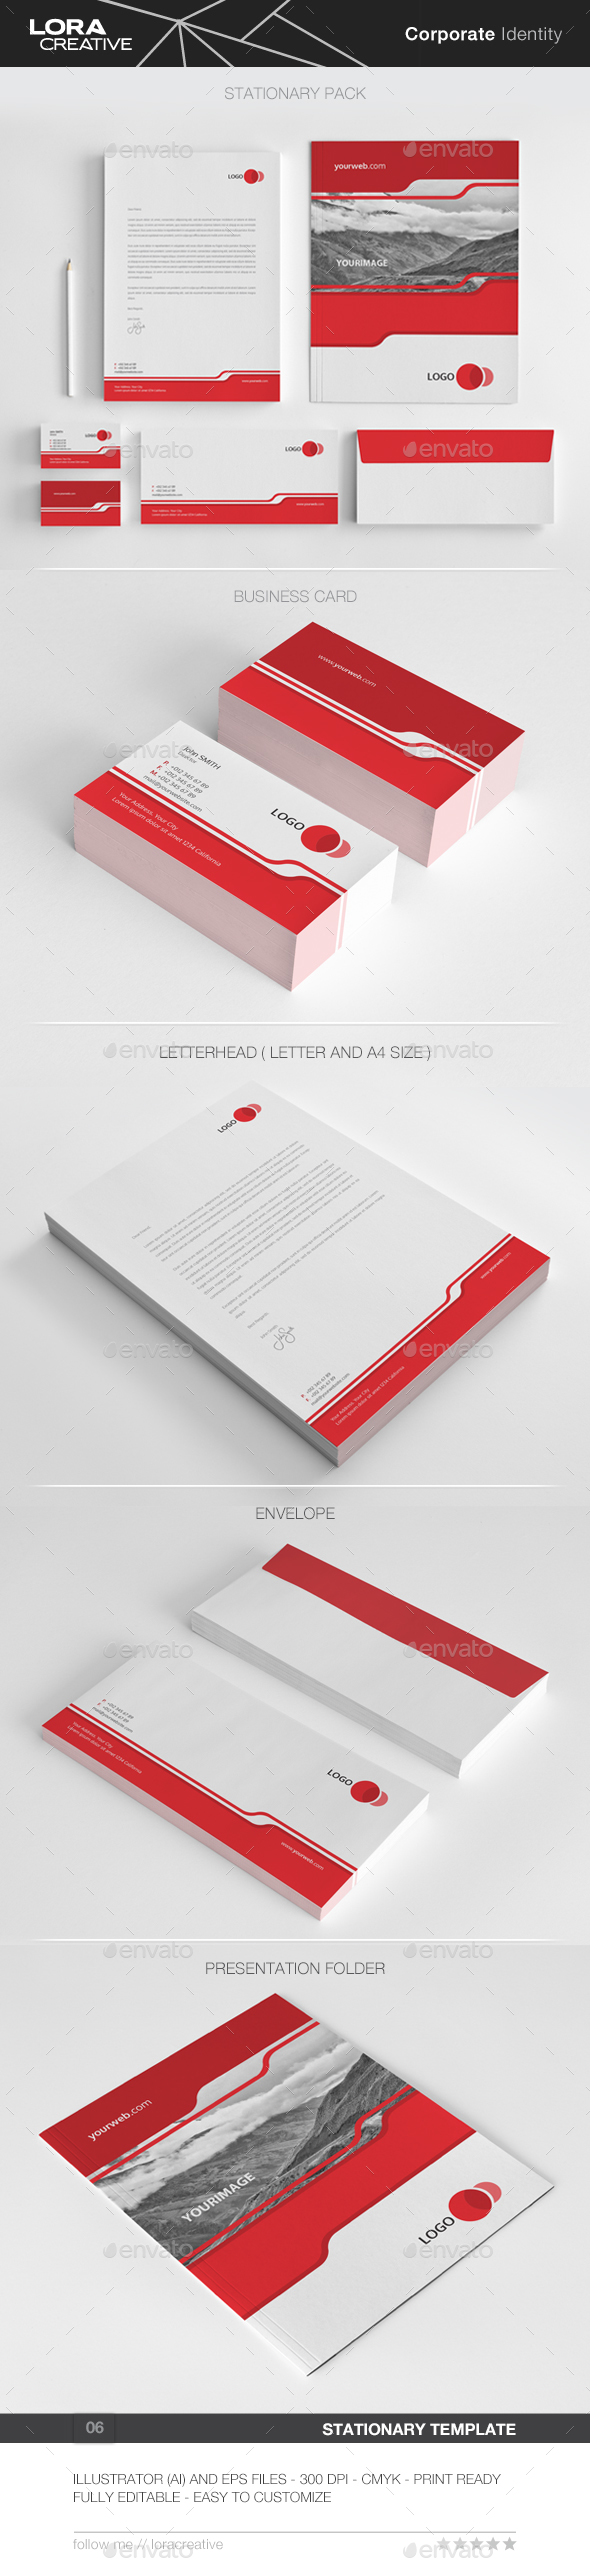 Cool Concept Stationary Pack - 06 - Stationery Print Templates